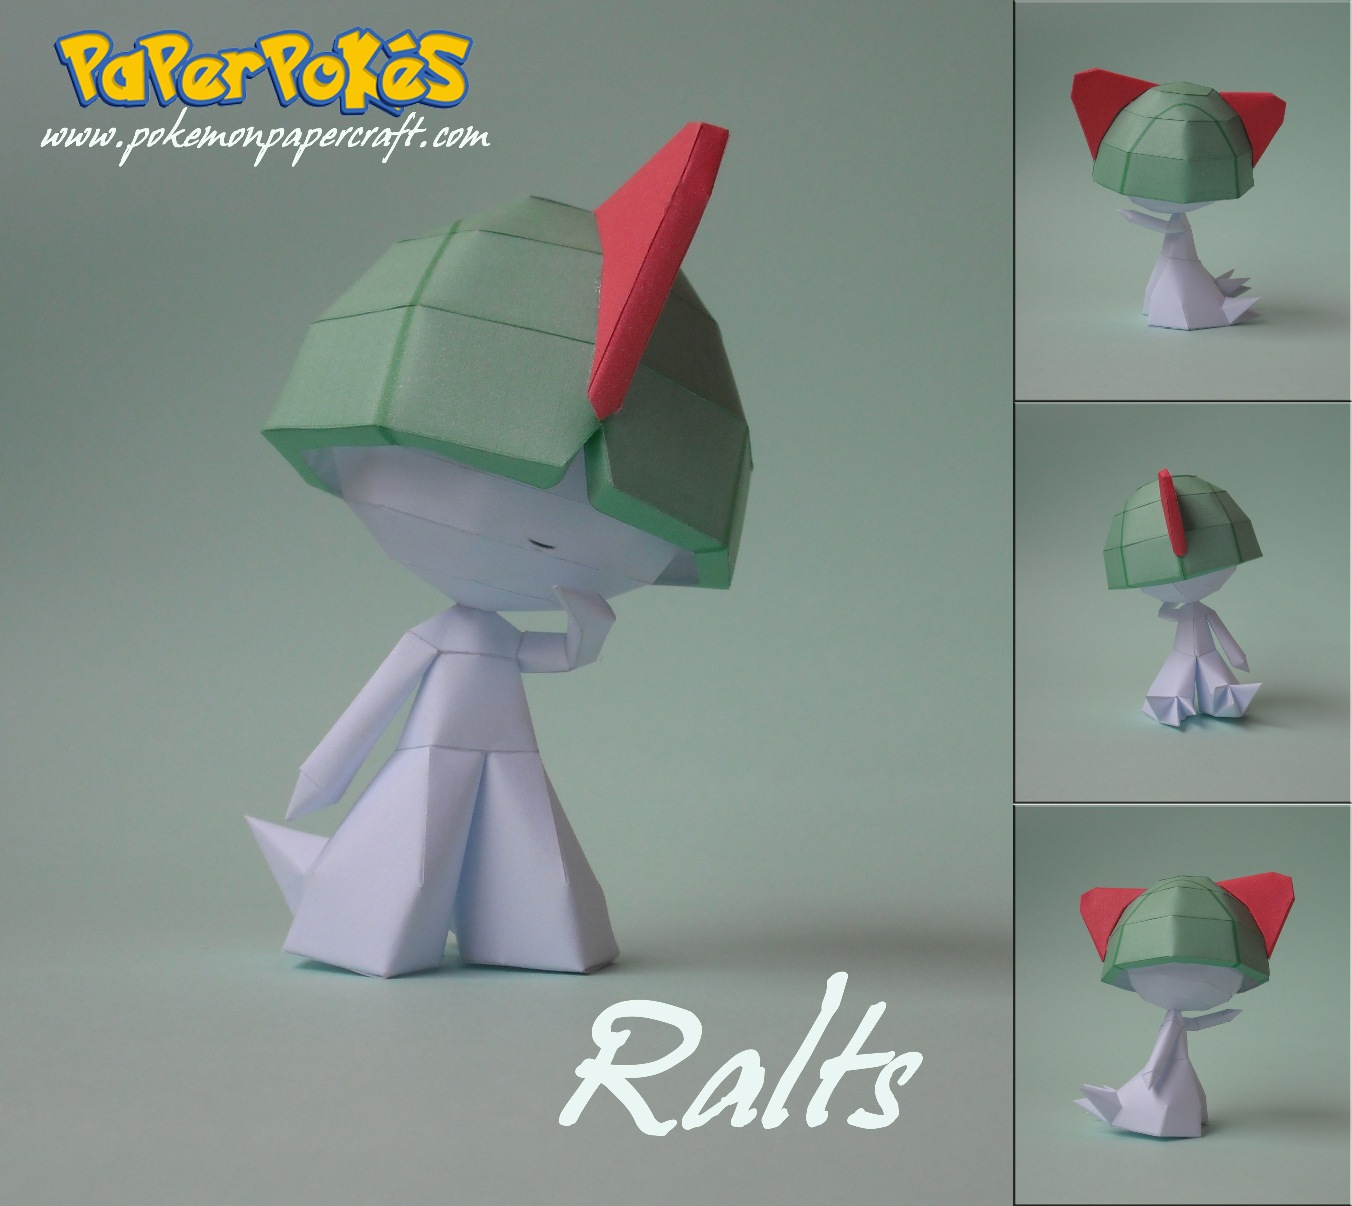 Ralts Papercraft by Olber-Correa on DeviantArt - photo#47